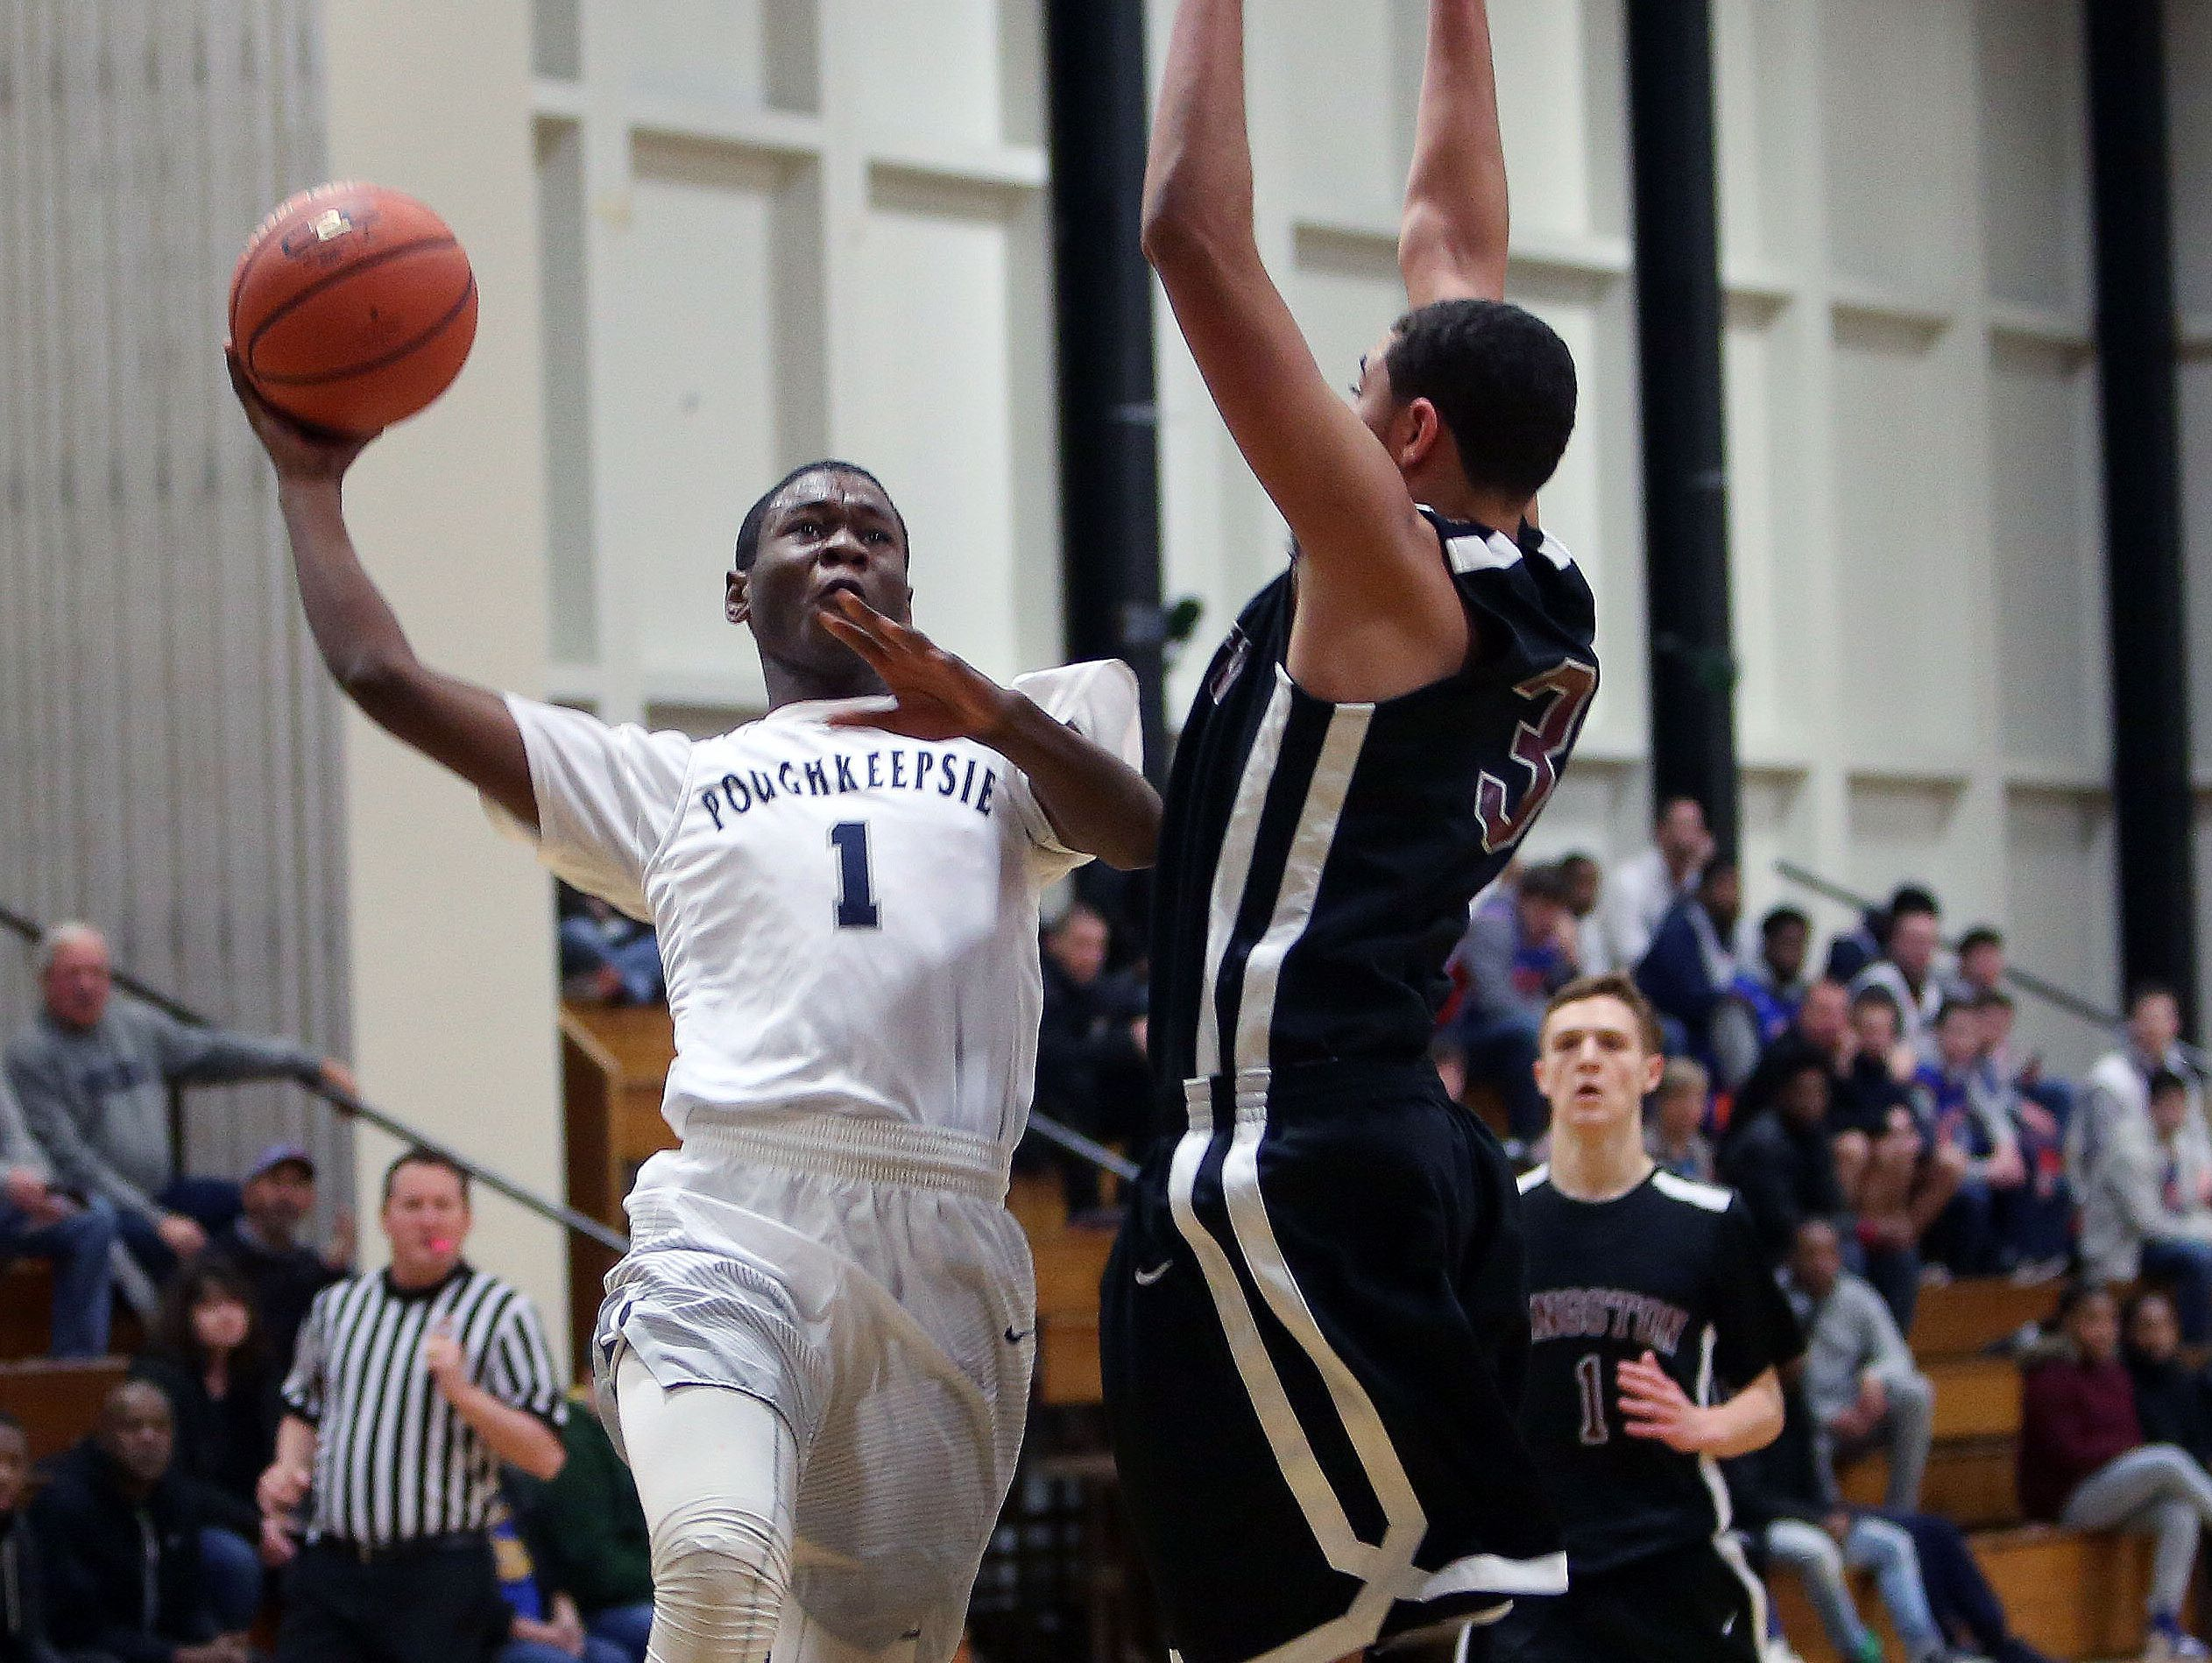 Poughkeepsie's Shaquez Nesbitt (1) drives to the basket in front of Kingston's Skilar Ryan (30) during the Officials vs Cancer basketball tournament at Dutchess Community College Feb. 4, 2017. Kingston won the game 66-46.